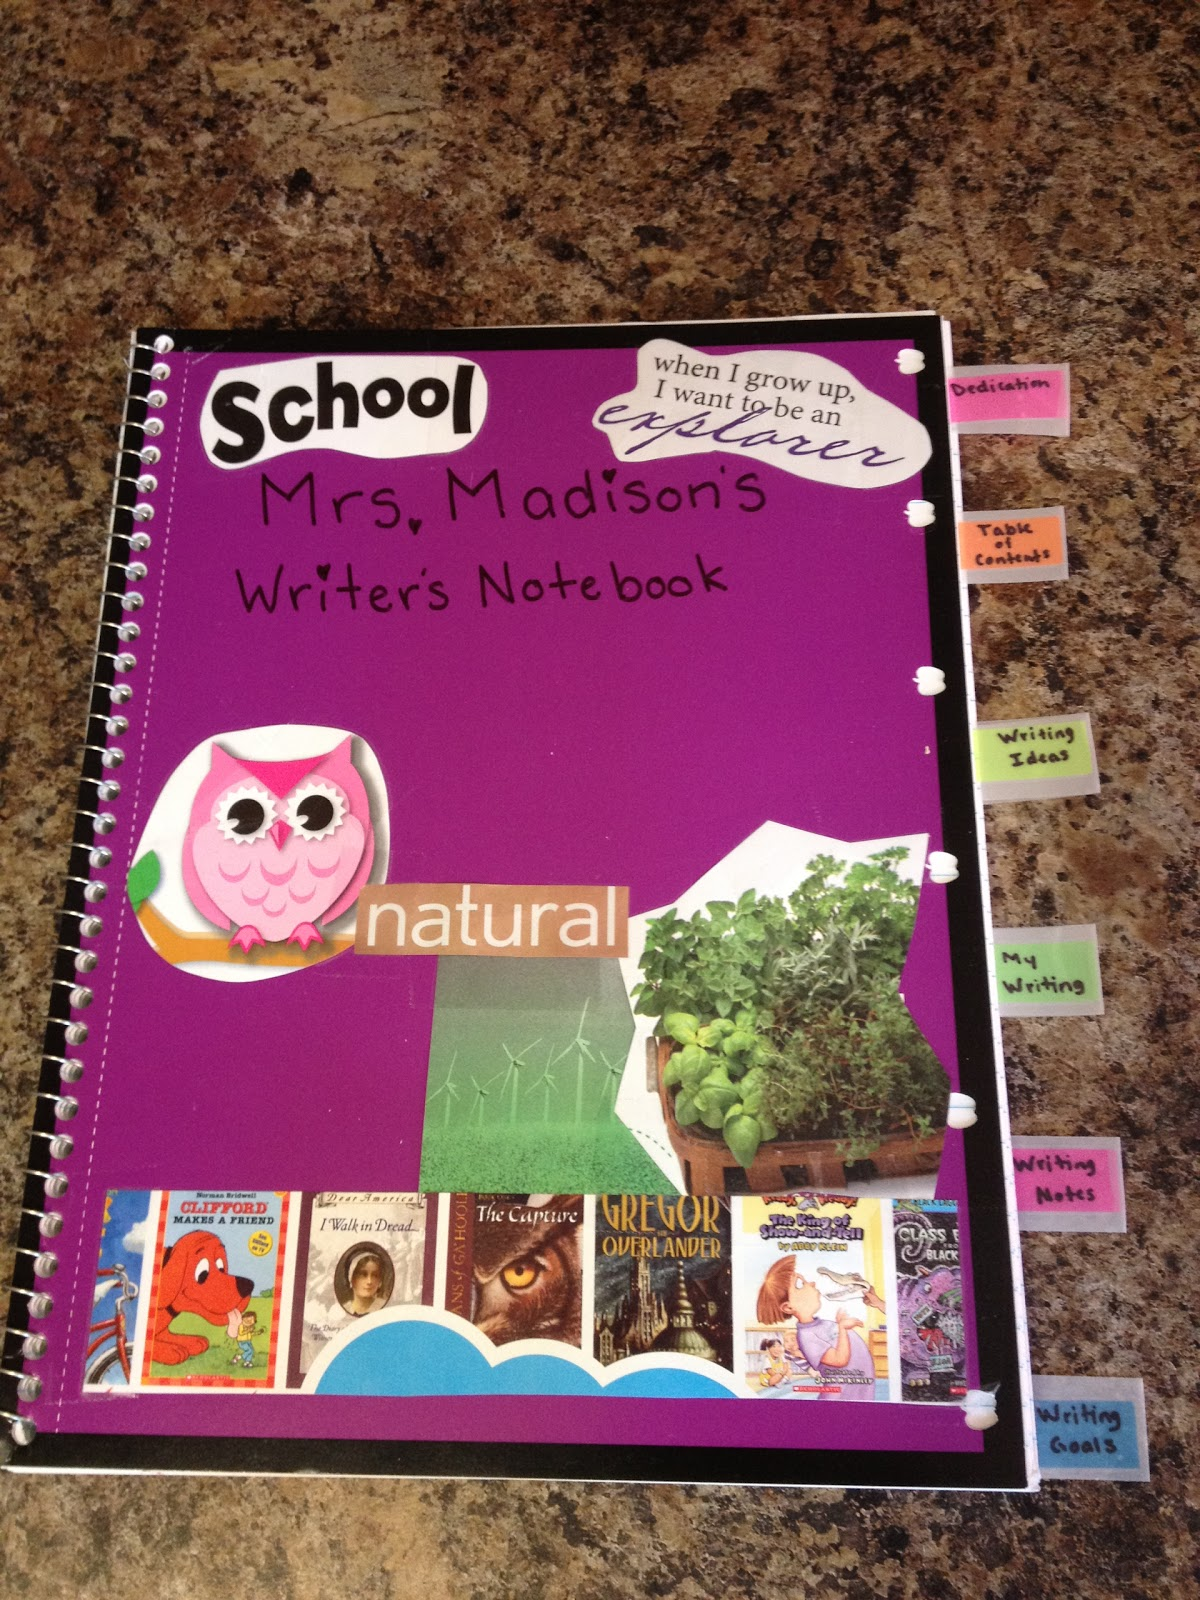 the notebook writer why i hate nicholas sparks book club babe top  apples of your eye writer s notebook organization writer s notebook organization